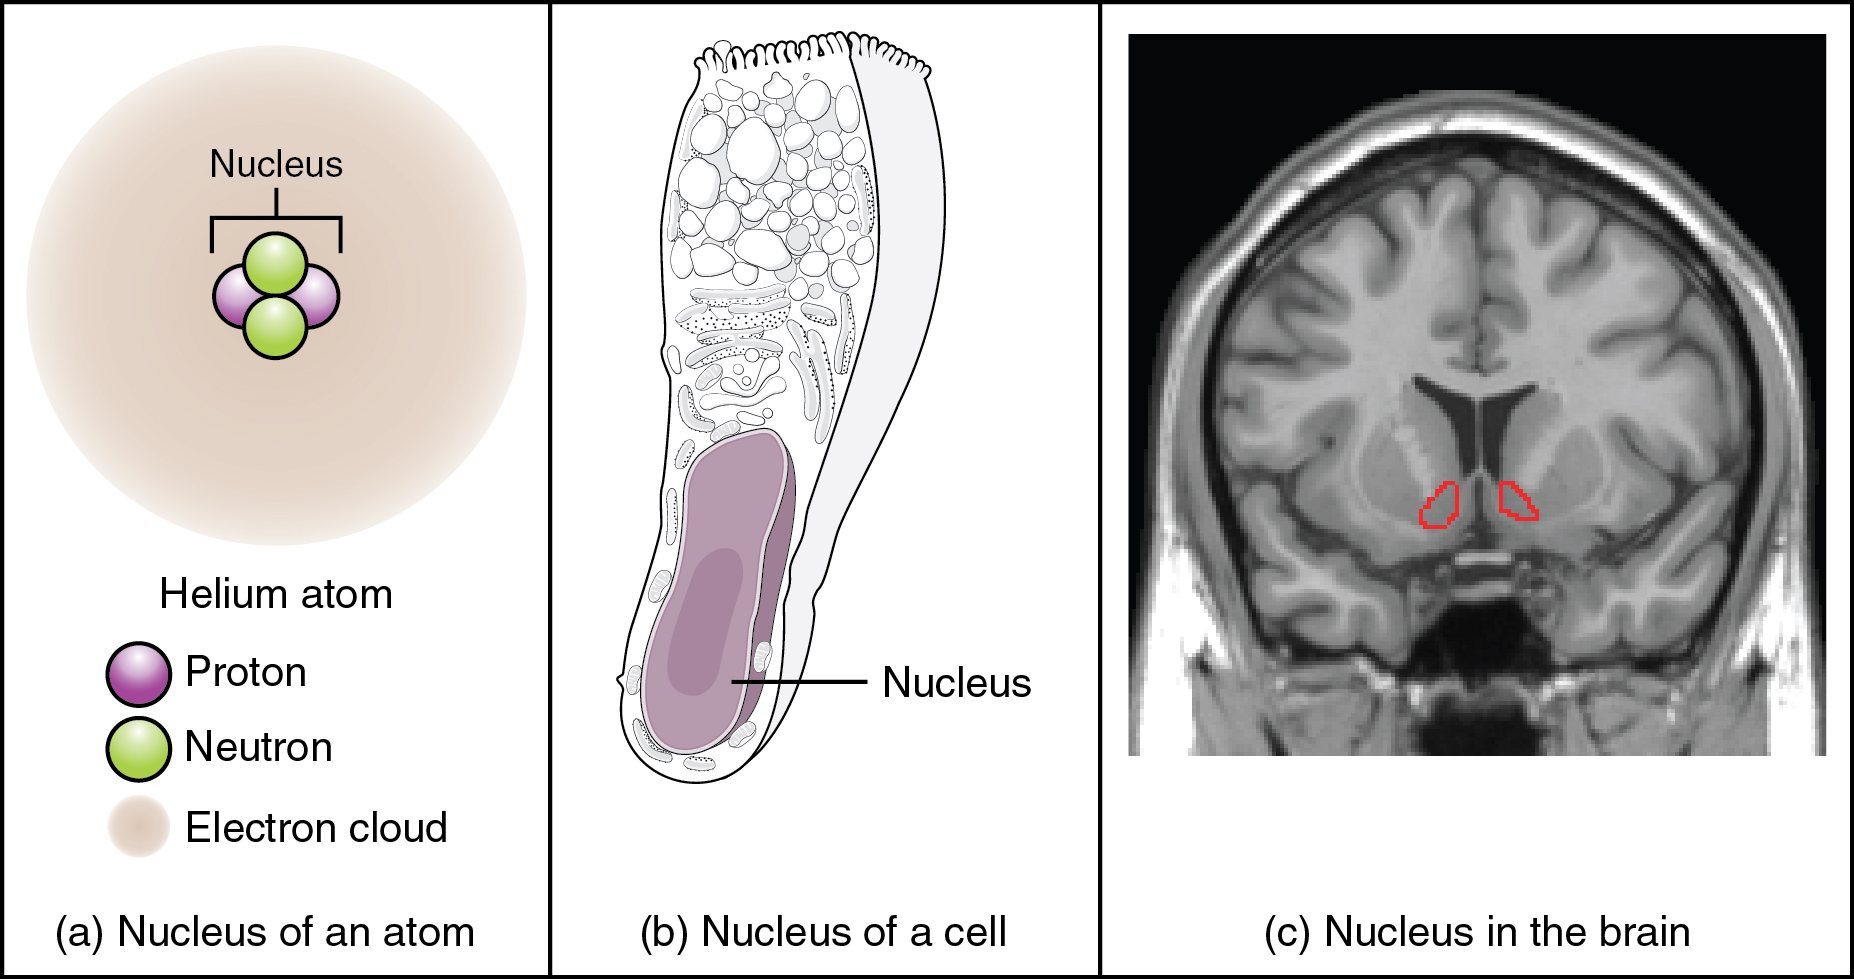 Nuclei - Definition